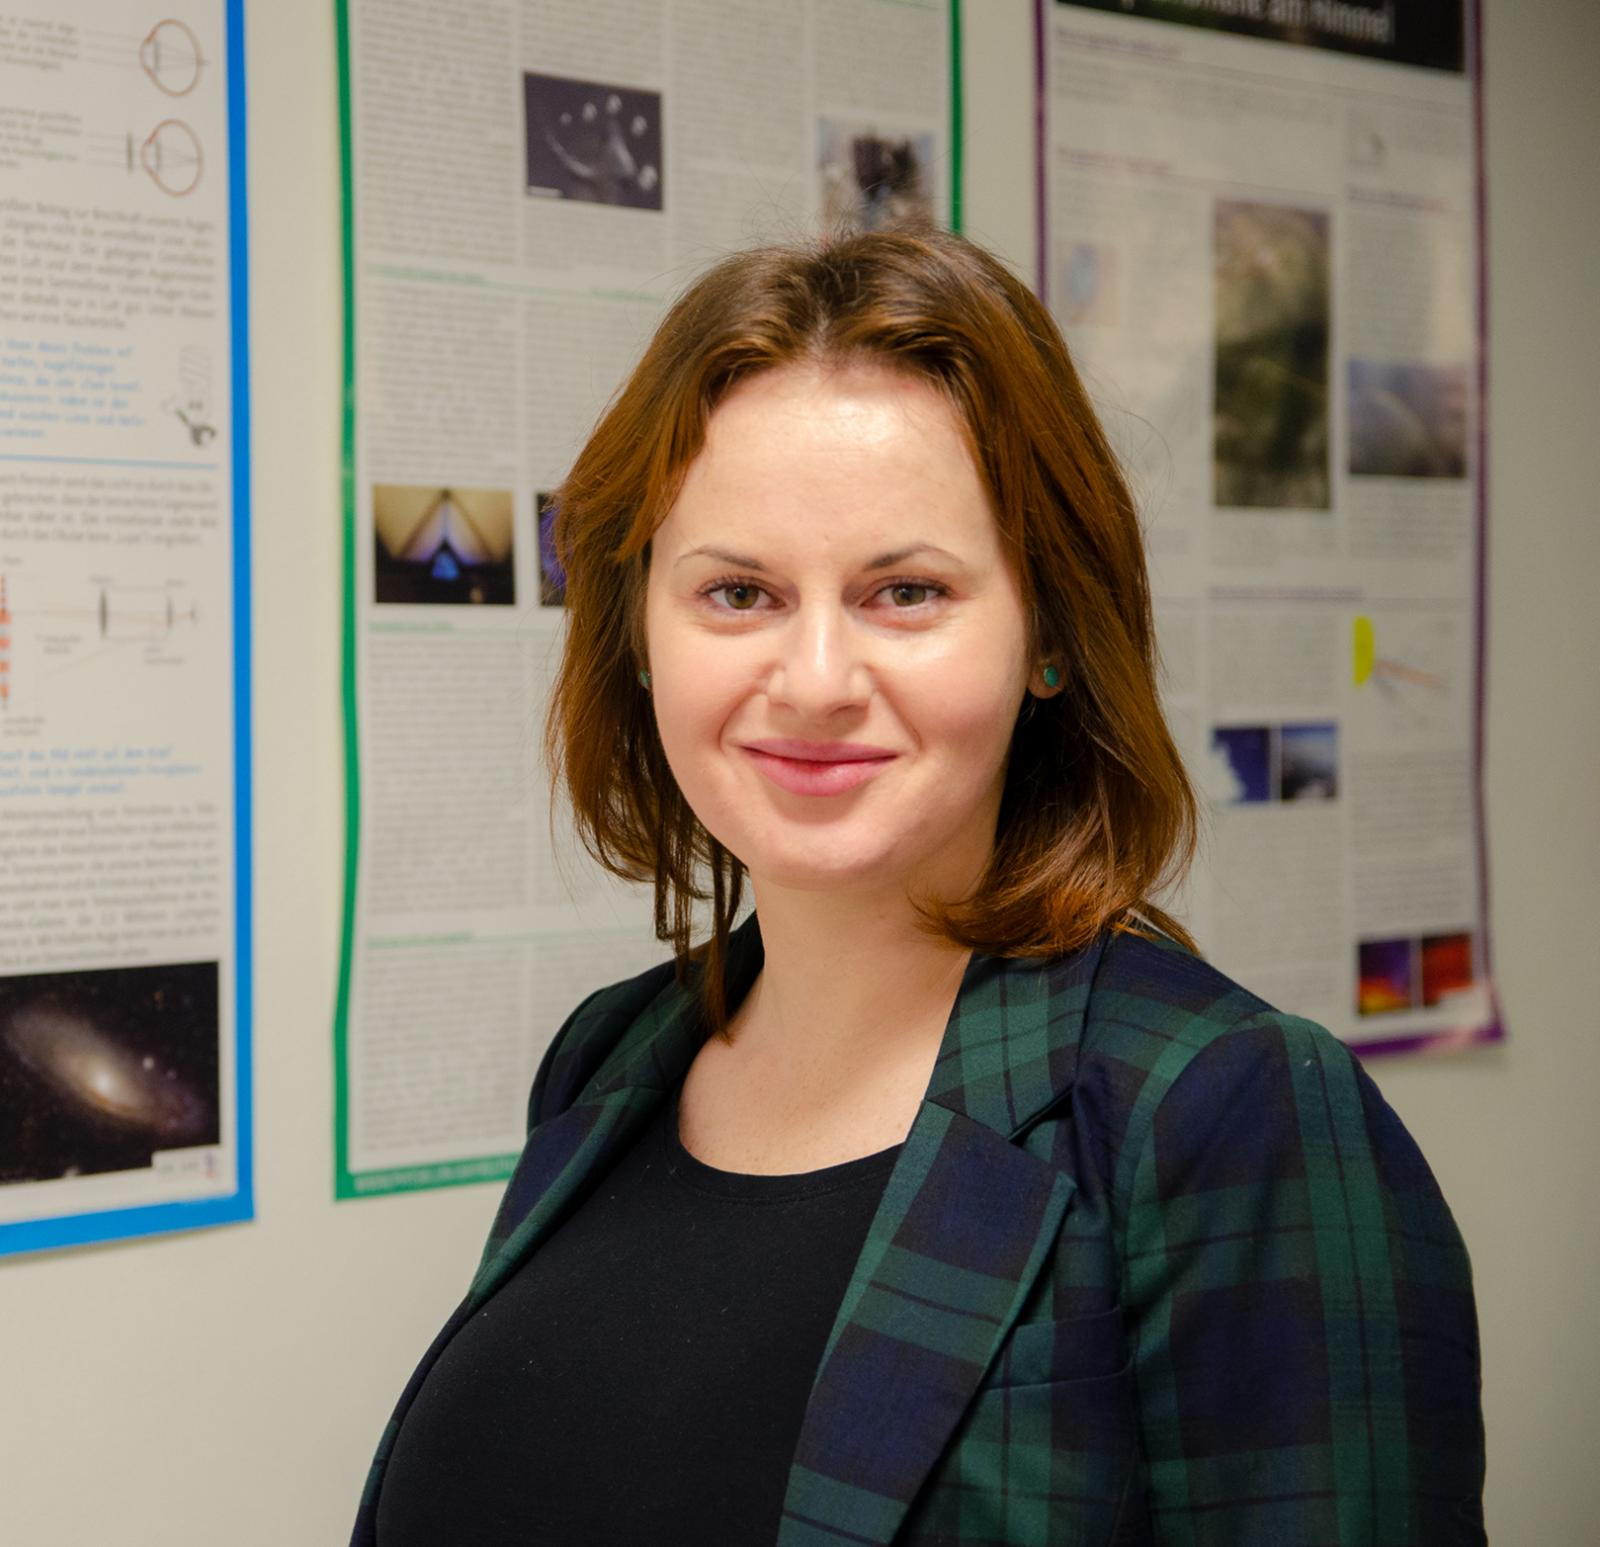 Svitlana Sovinska is doing a PhD at Cracow University of Technology, which involves her conducting research with us here in Steinfurt.